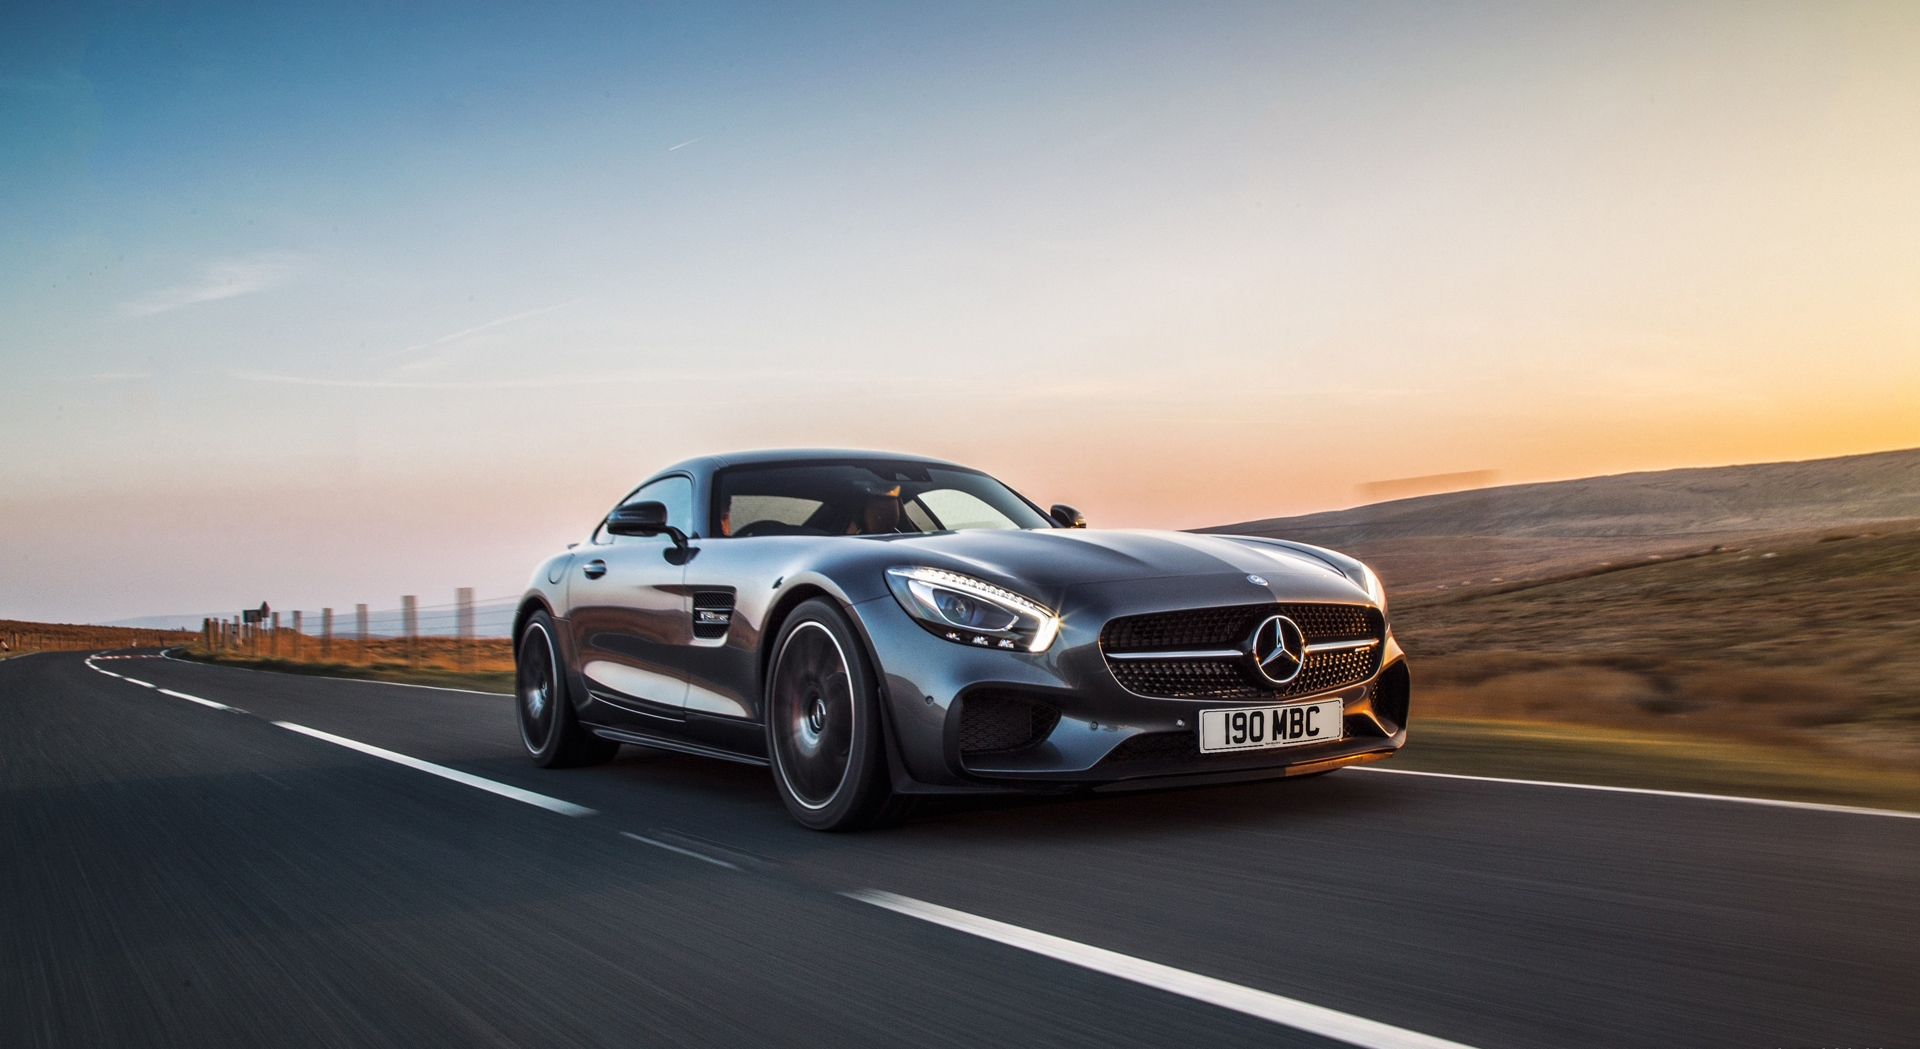 Mercedes Benz Amg GT Wallpapers Archives   Page 6 of 7 1920x1049